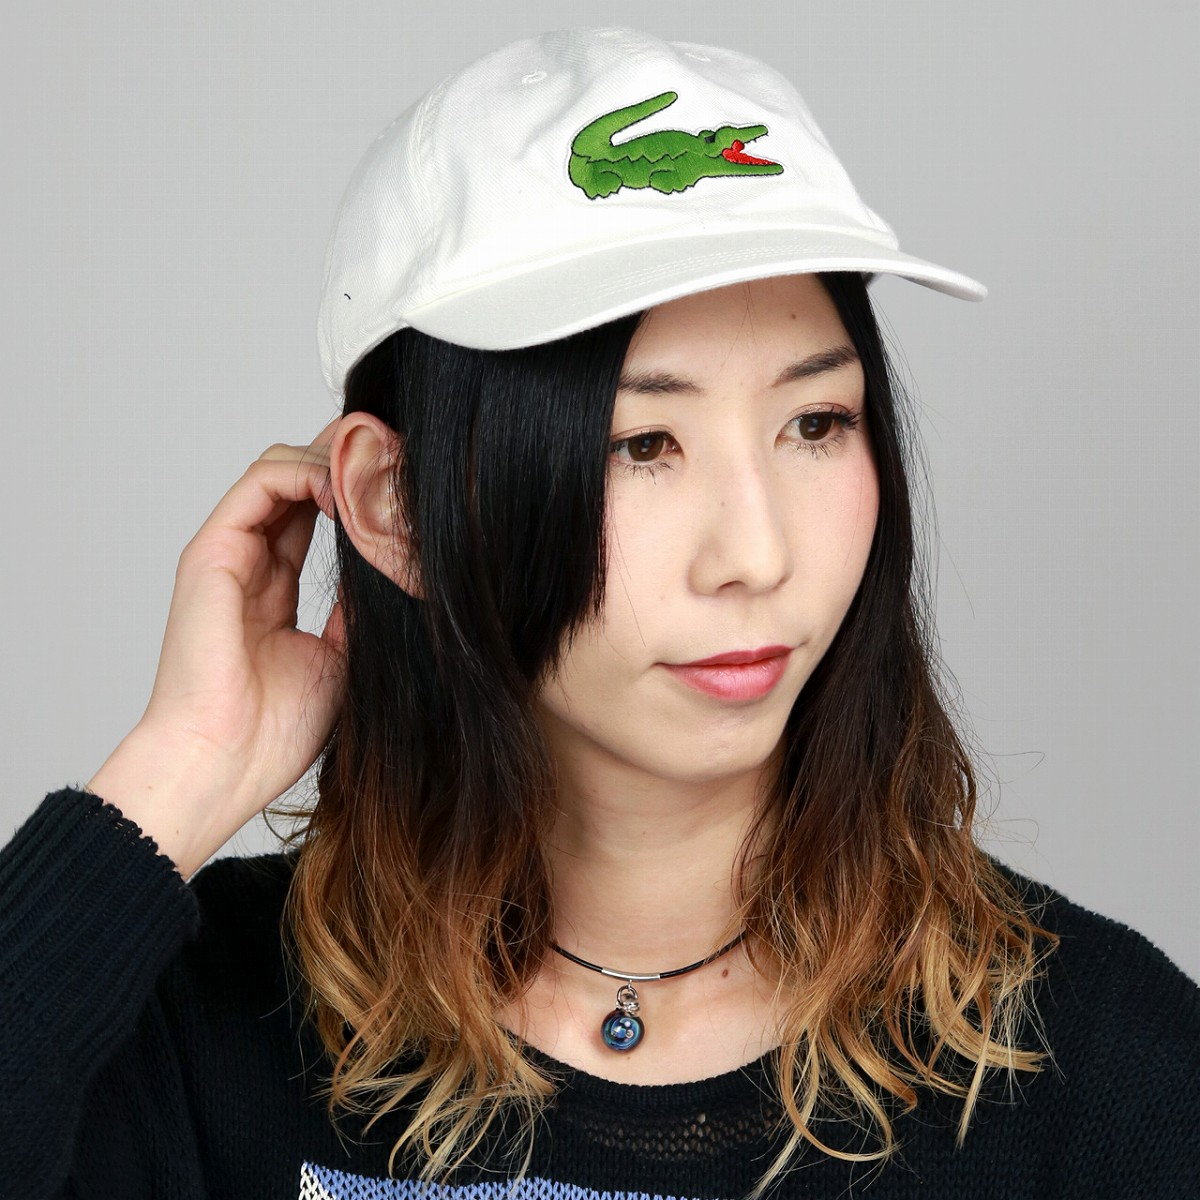 10f4725a81f Lacoste Cap all season Lacoste 6 Cap mens caps women s CAP spring summer Hat  Wani mark brand crocodile embroidery katsuragi autumn winter hats men s ...